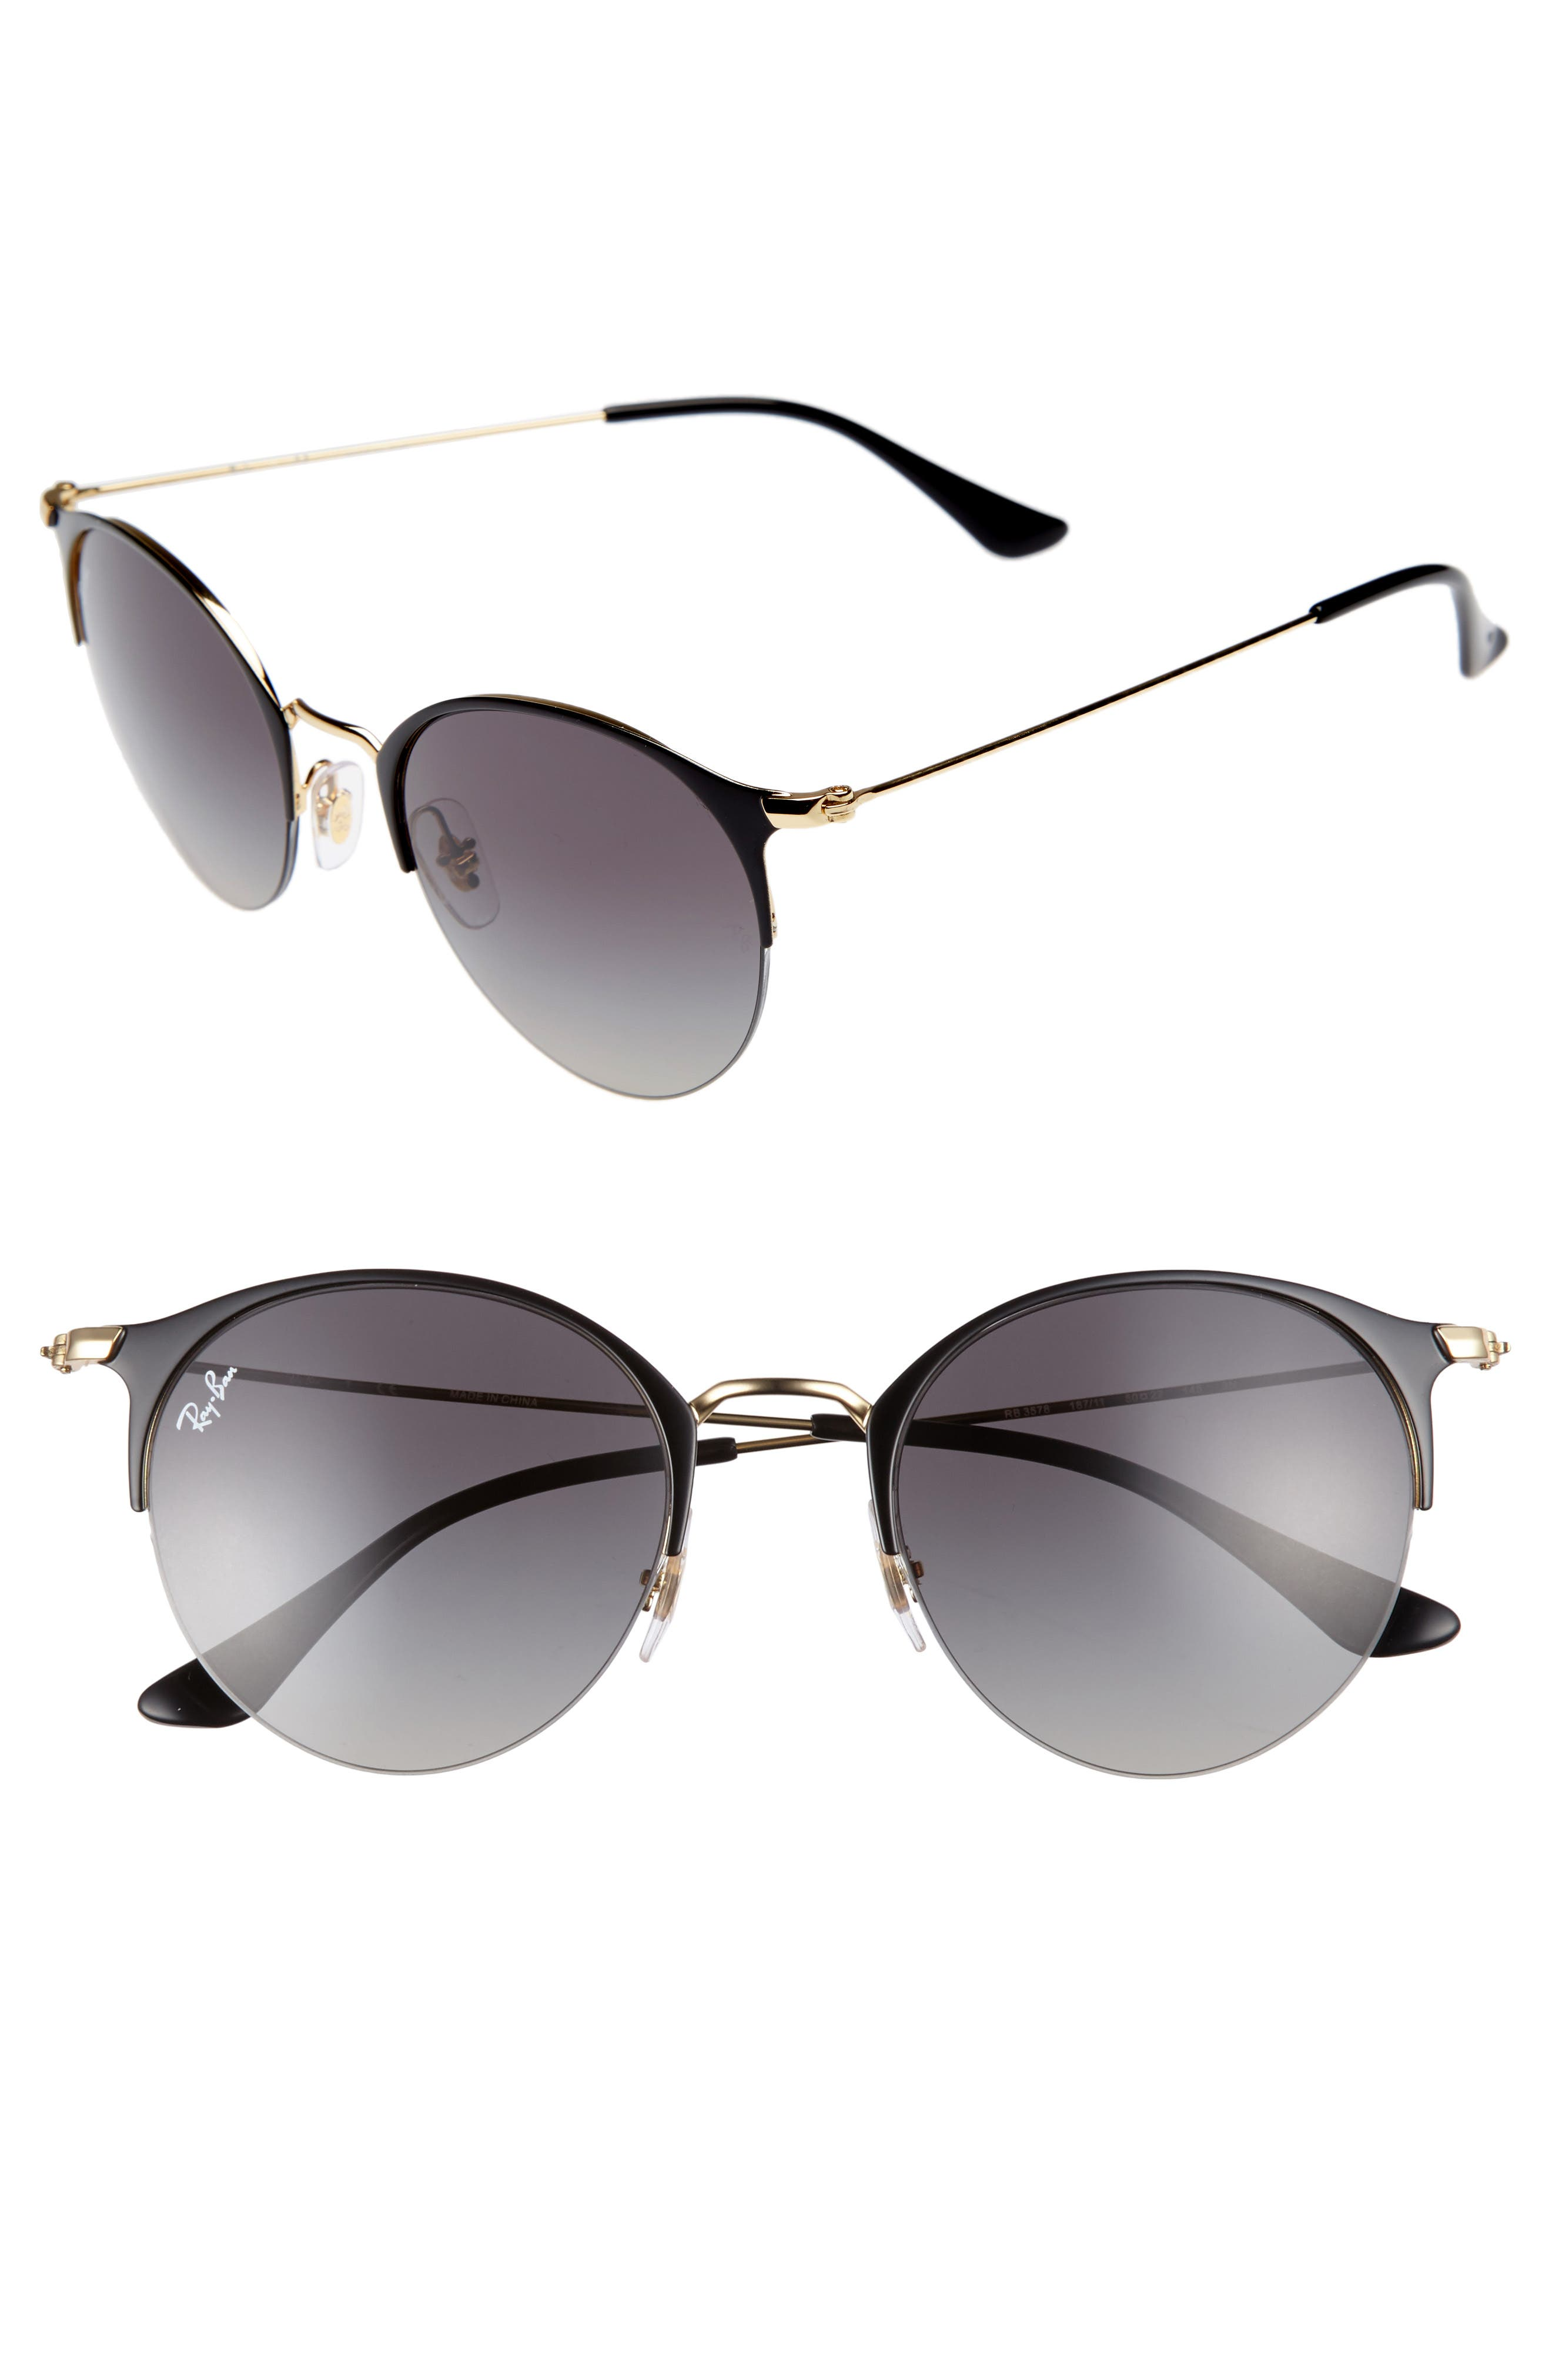 50mm Round Clubmaster Sunglasses,                             Main thumbnail 1, color,                             Gold/ Black